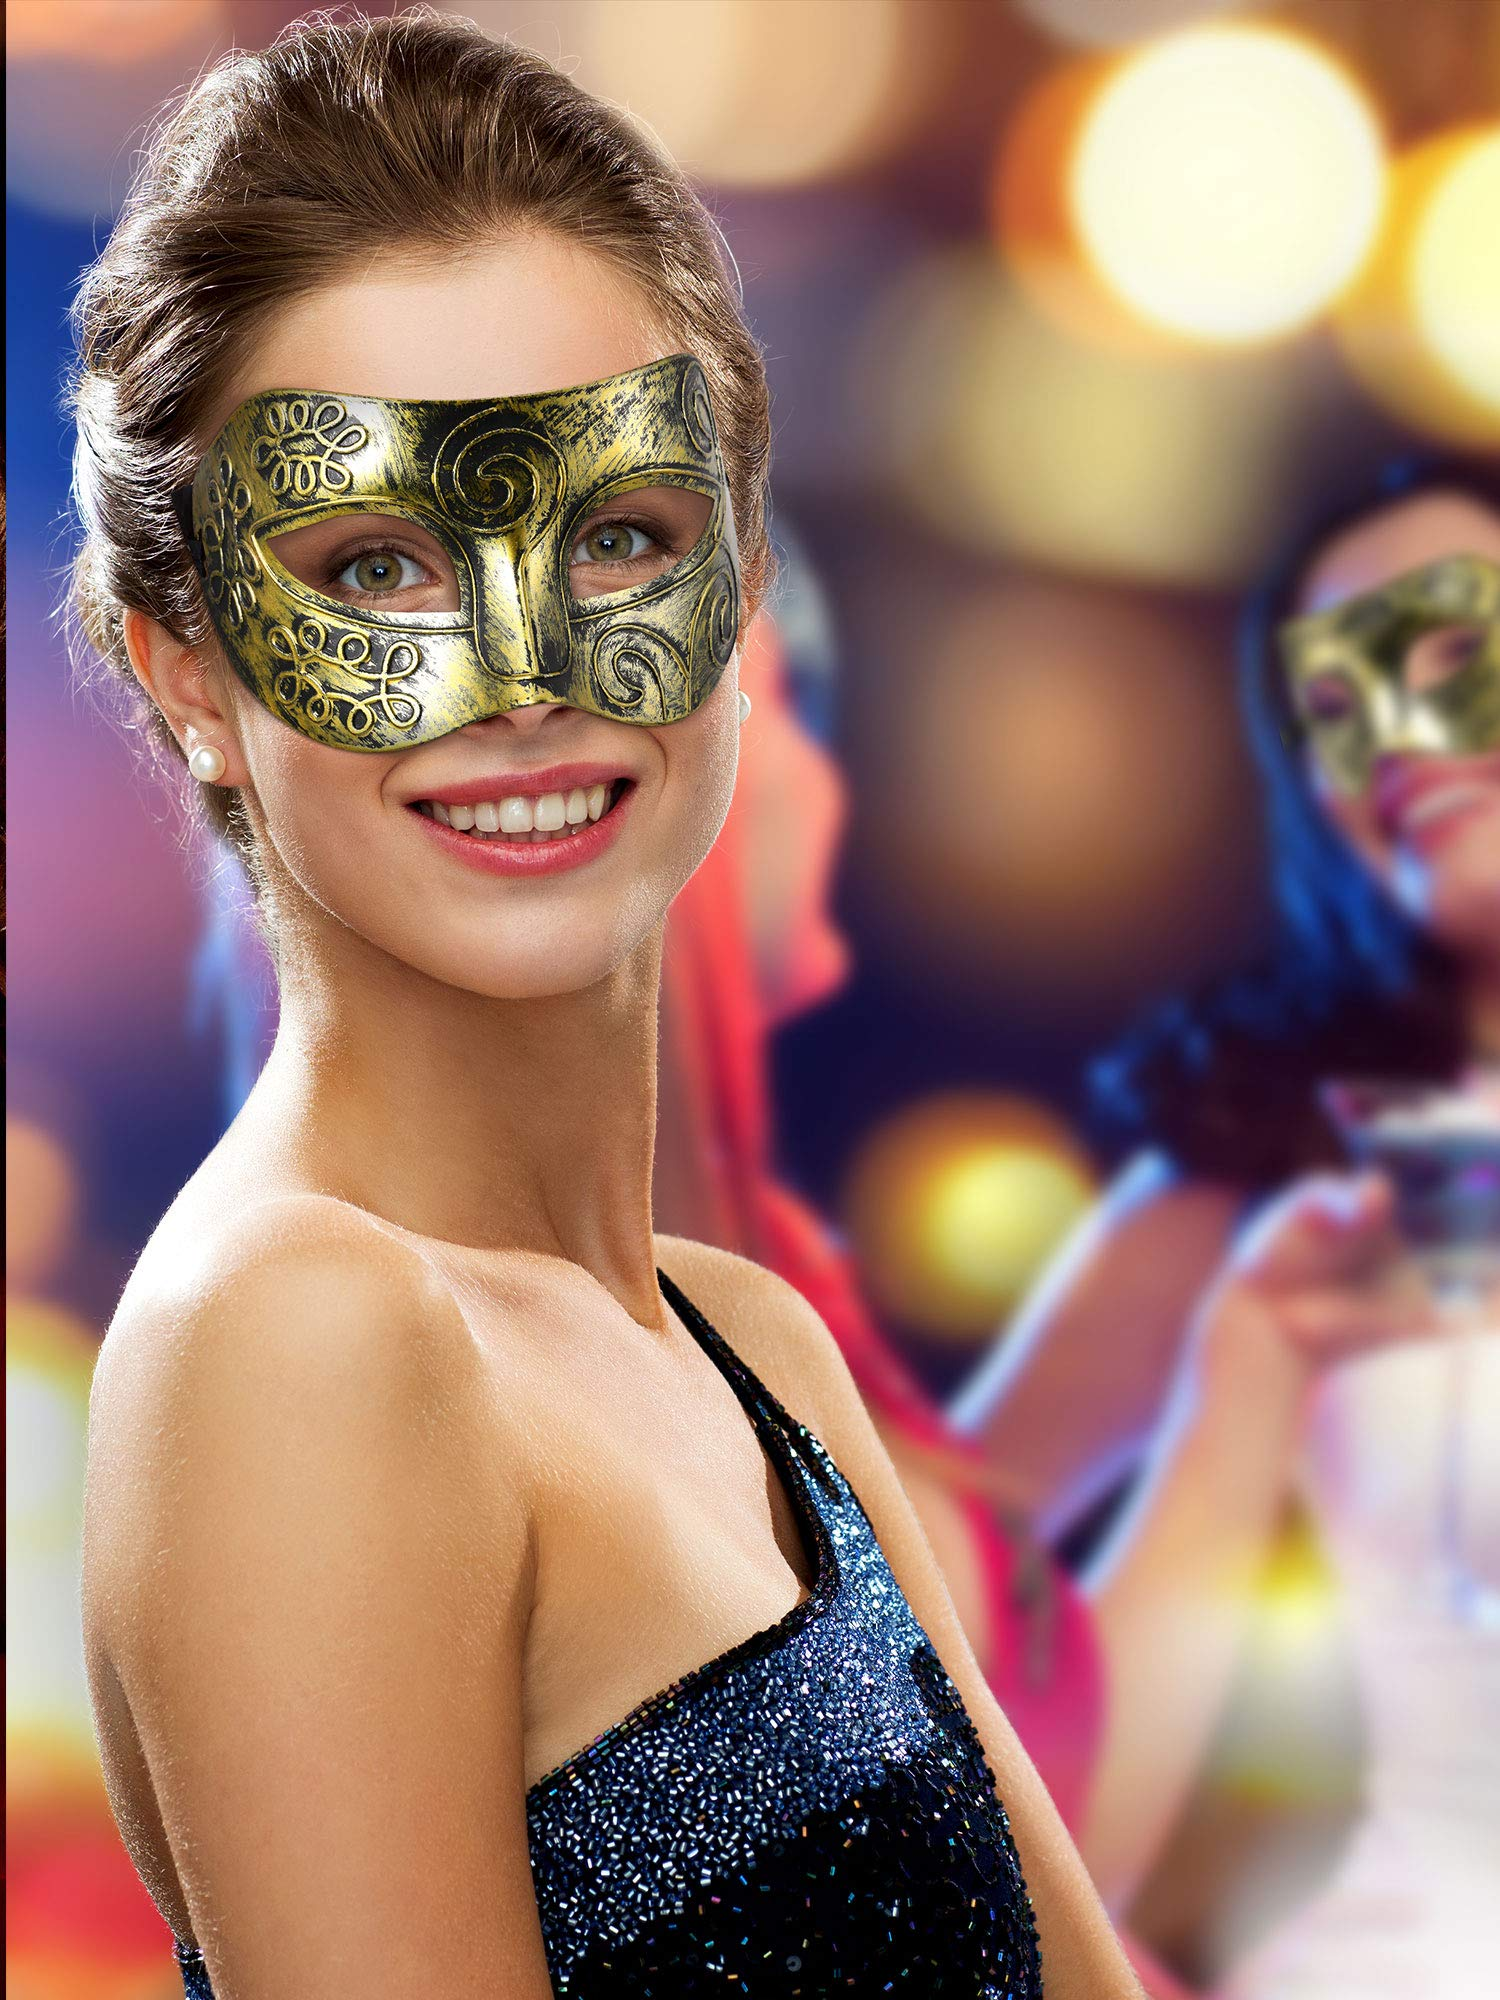 14 Pieces Unisex Retro Half Masquerade Masks Face Mask Venetian Mask for Fancy Dress Costume Party (Gold)